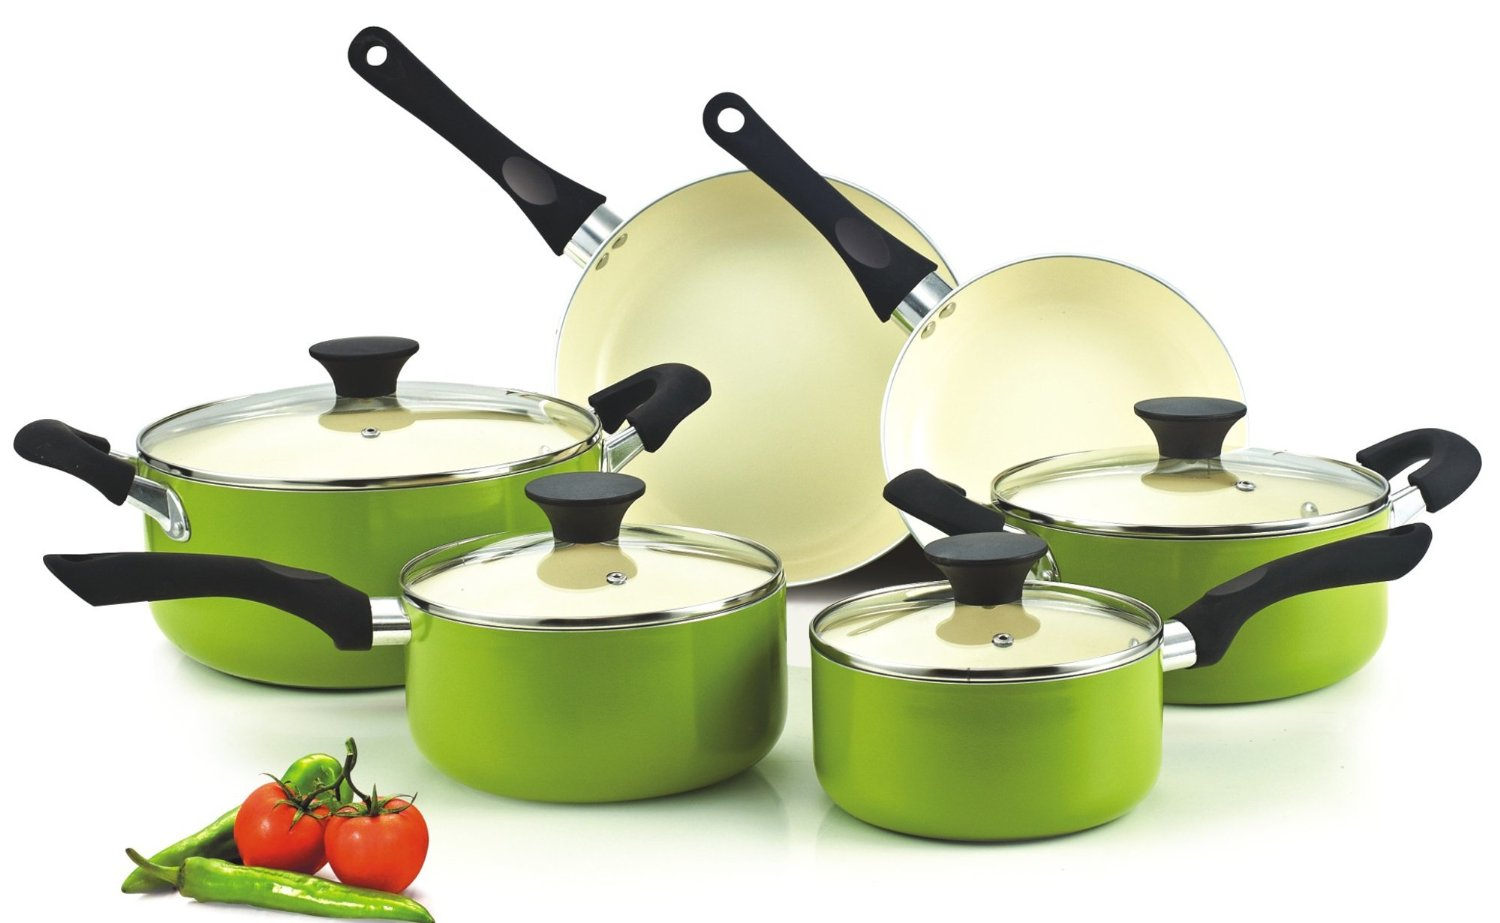 14 Common Misconceptions About Non-Stick Cookware